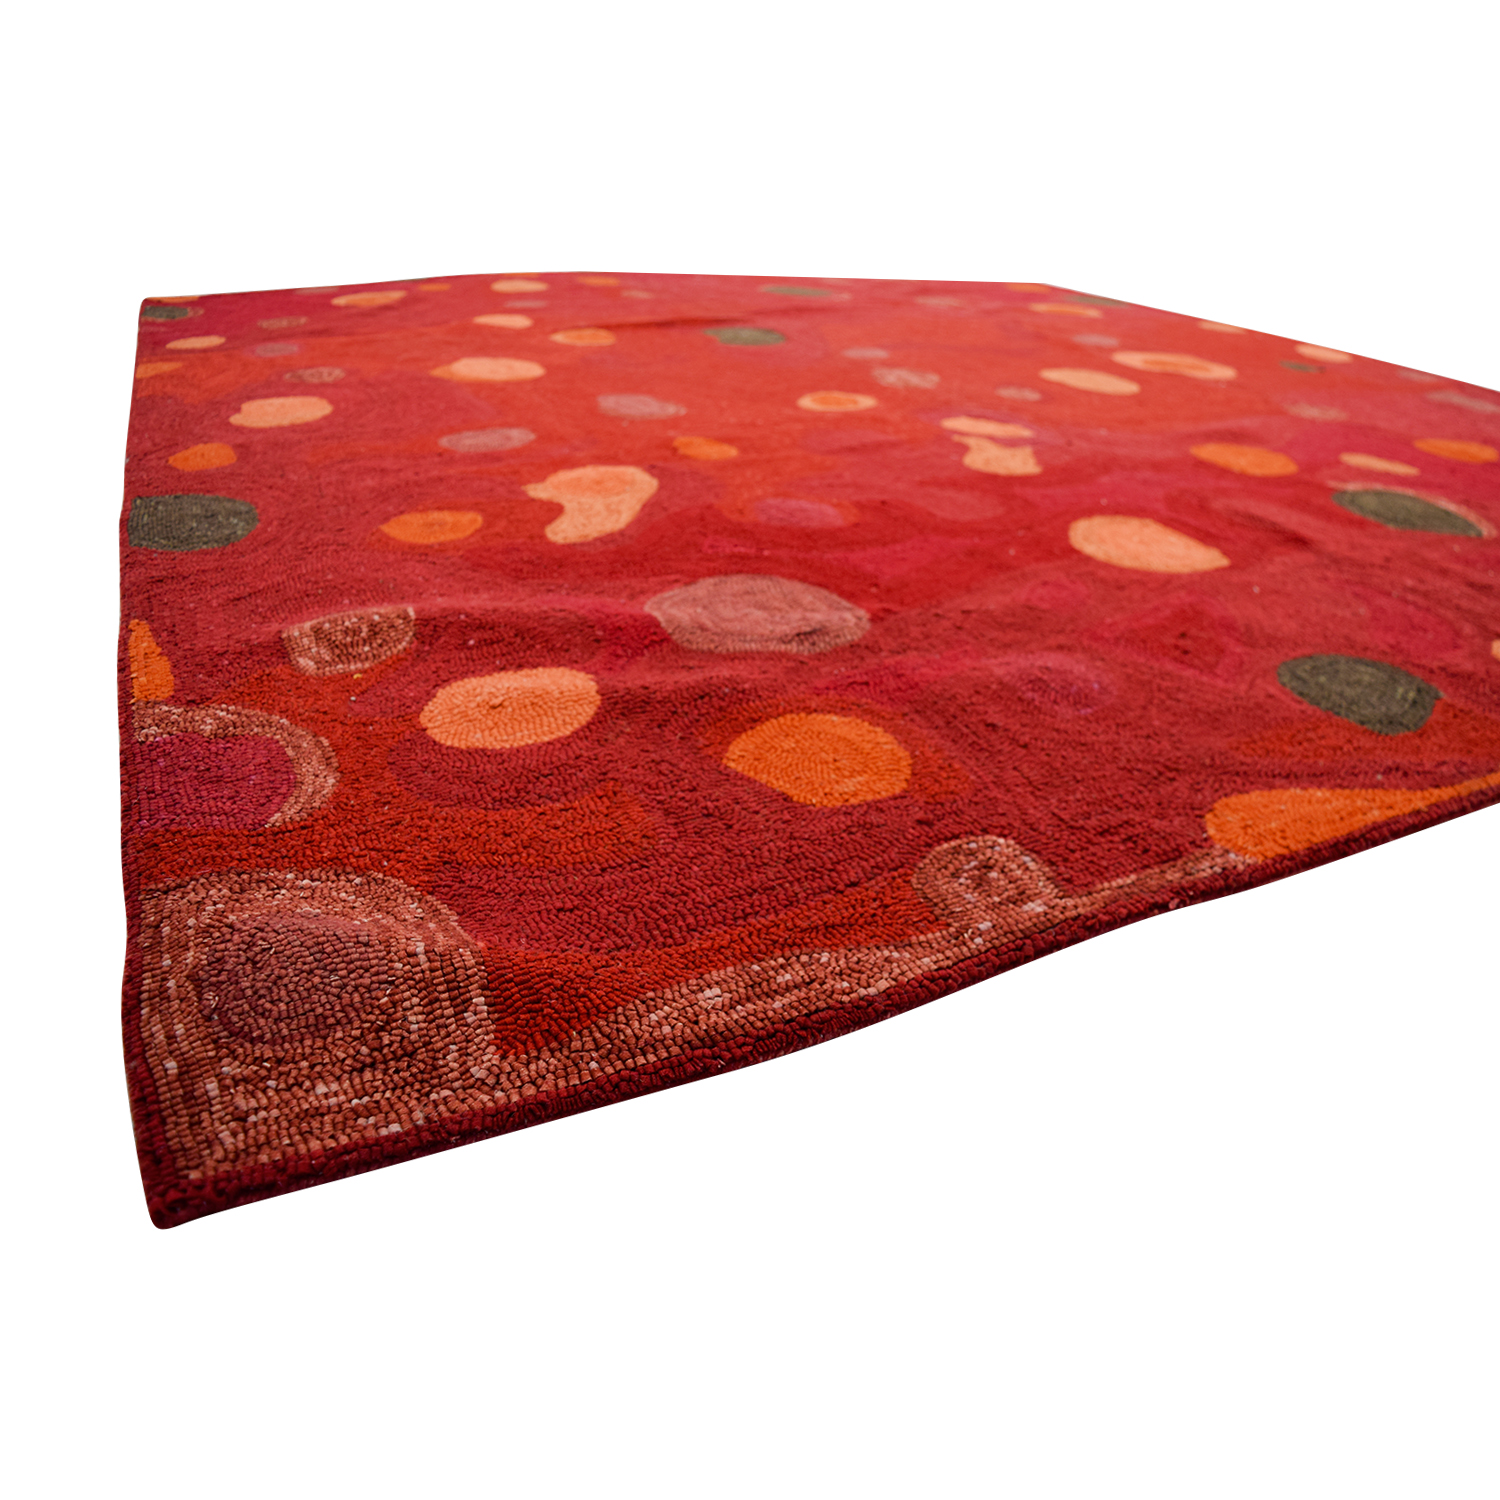 Obeetee Obeetee Red with Colored Spots Rug used